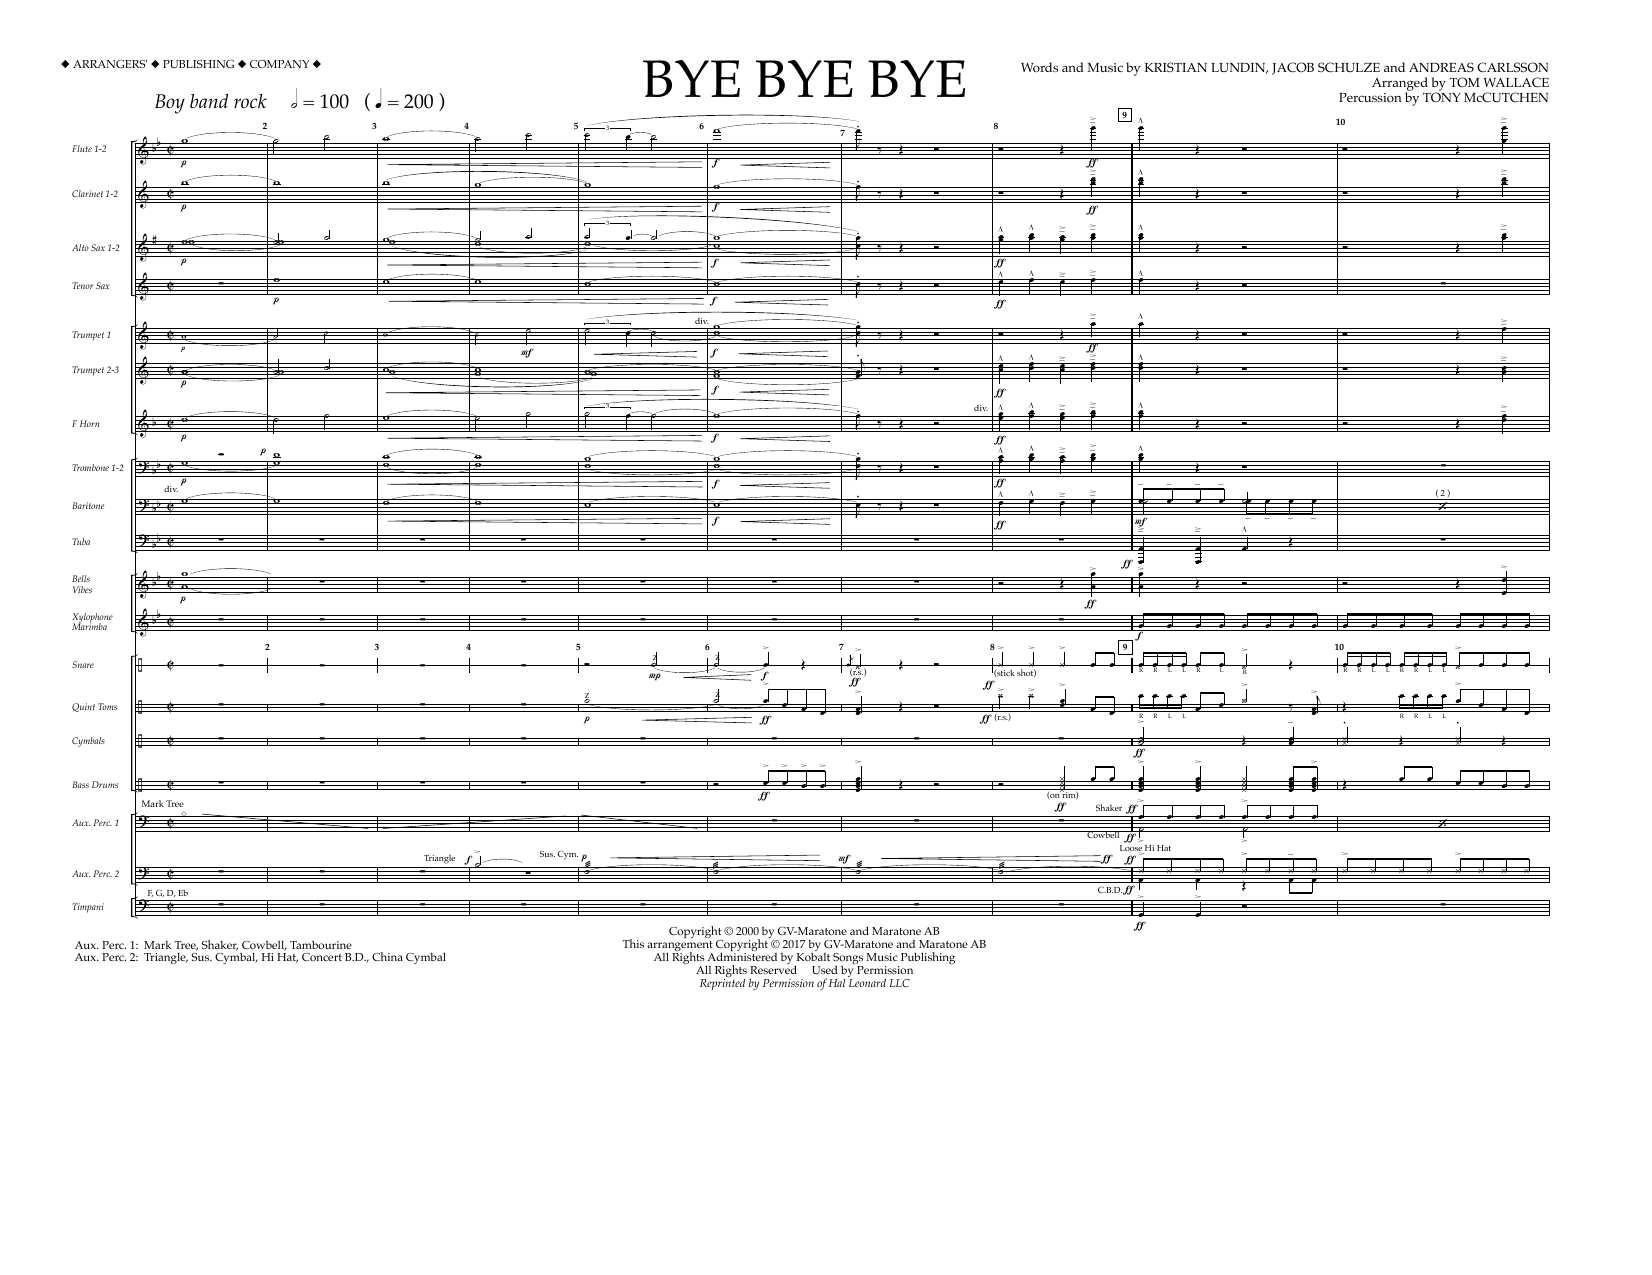 Bye Bye Bye (COMPLETE) sheet music for marching band by Tom Wallace, Andreas Carlsson and Kristian Lundin. Score Image Preview.